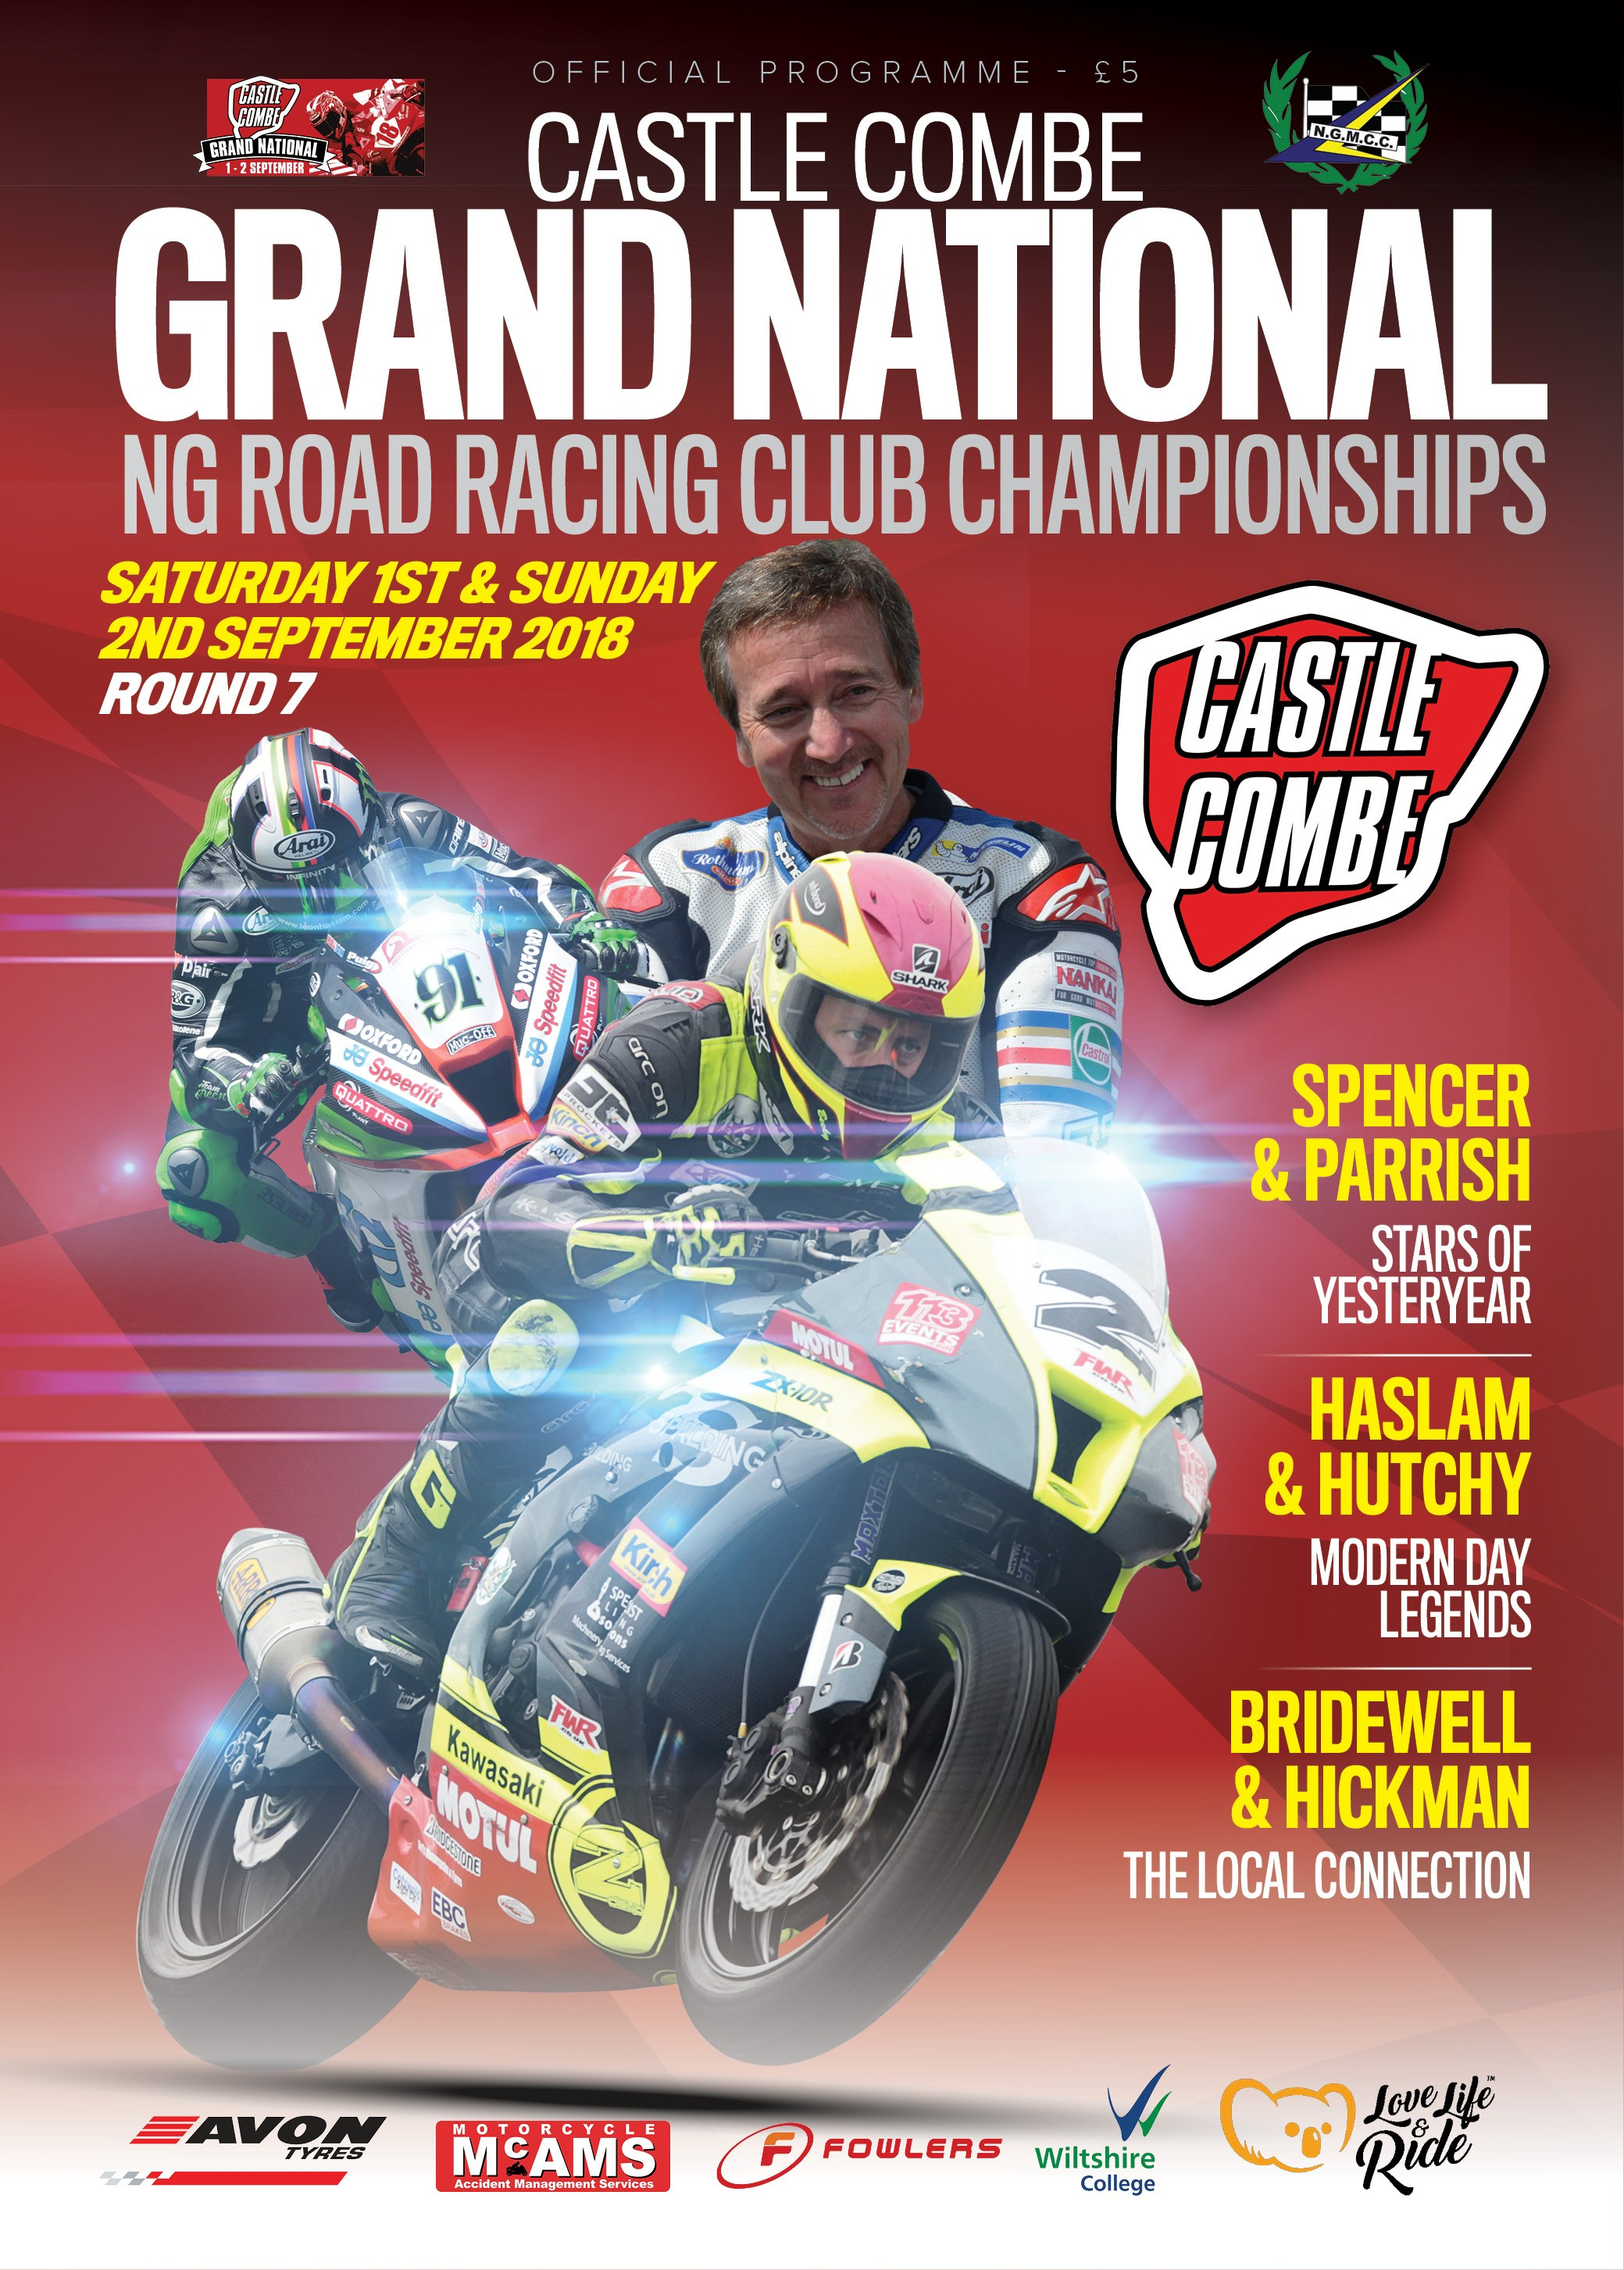 Grand National 2018 Souvenir Programme